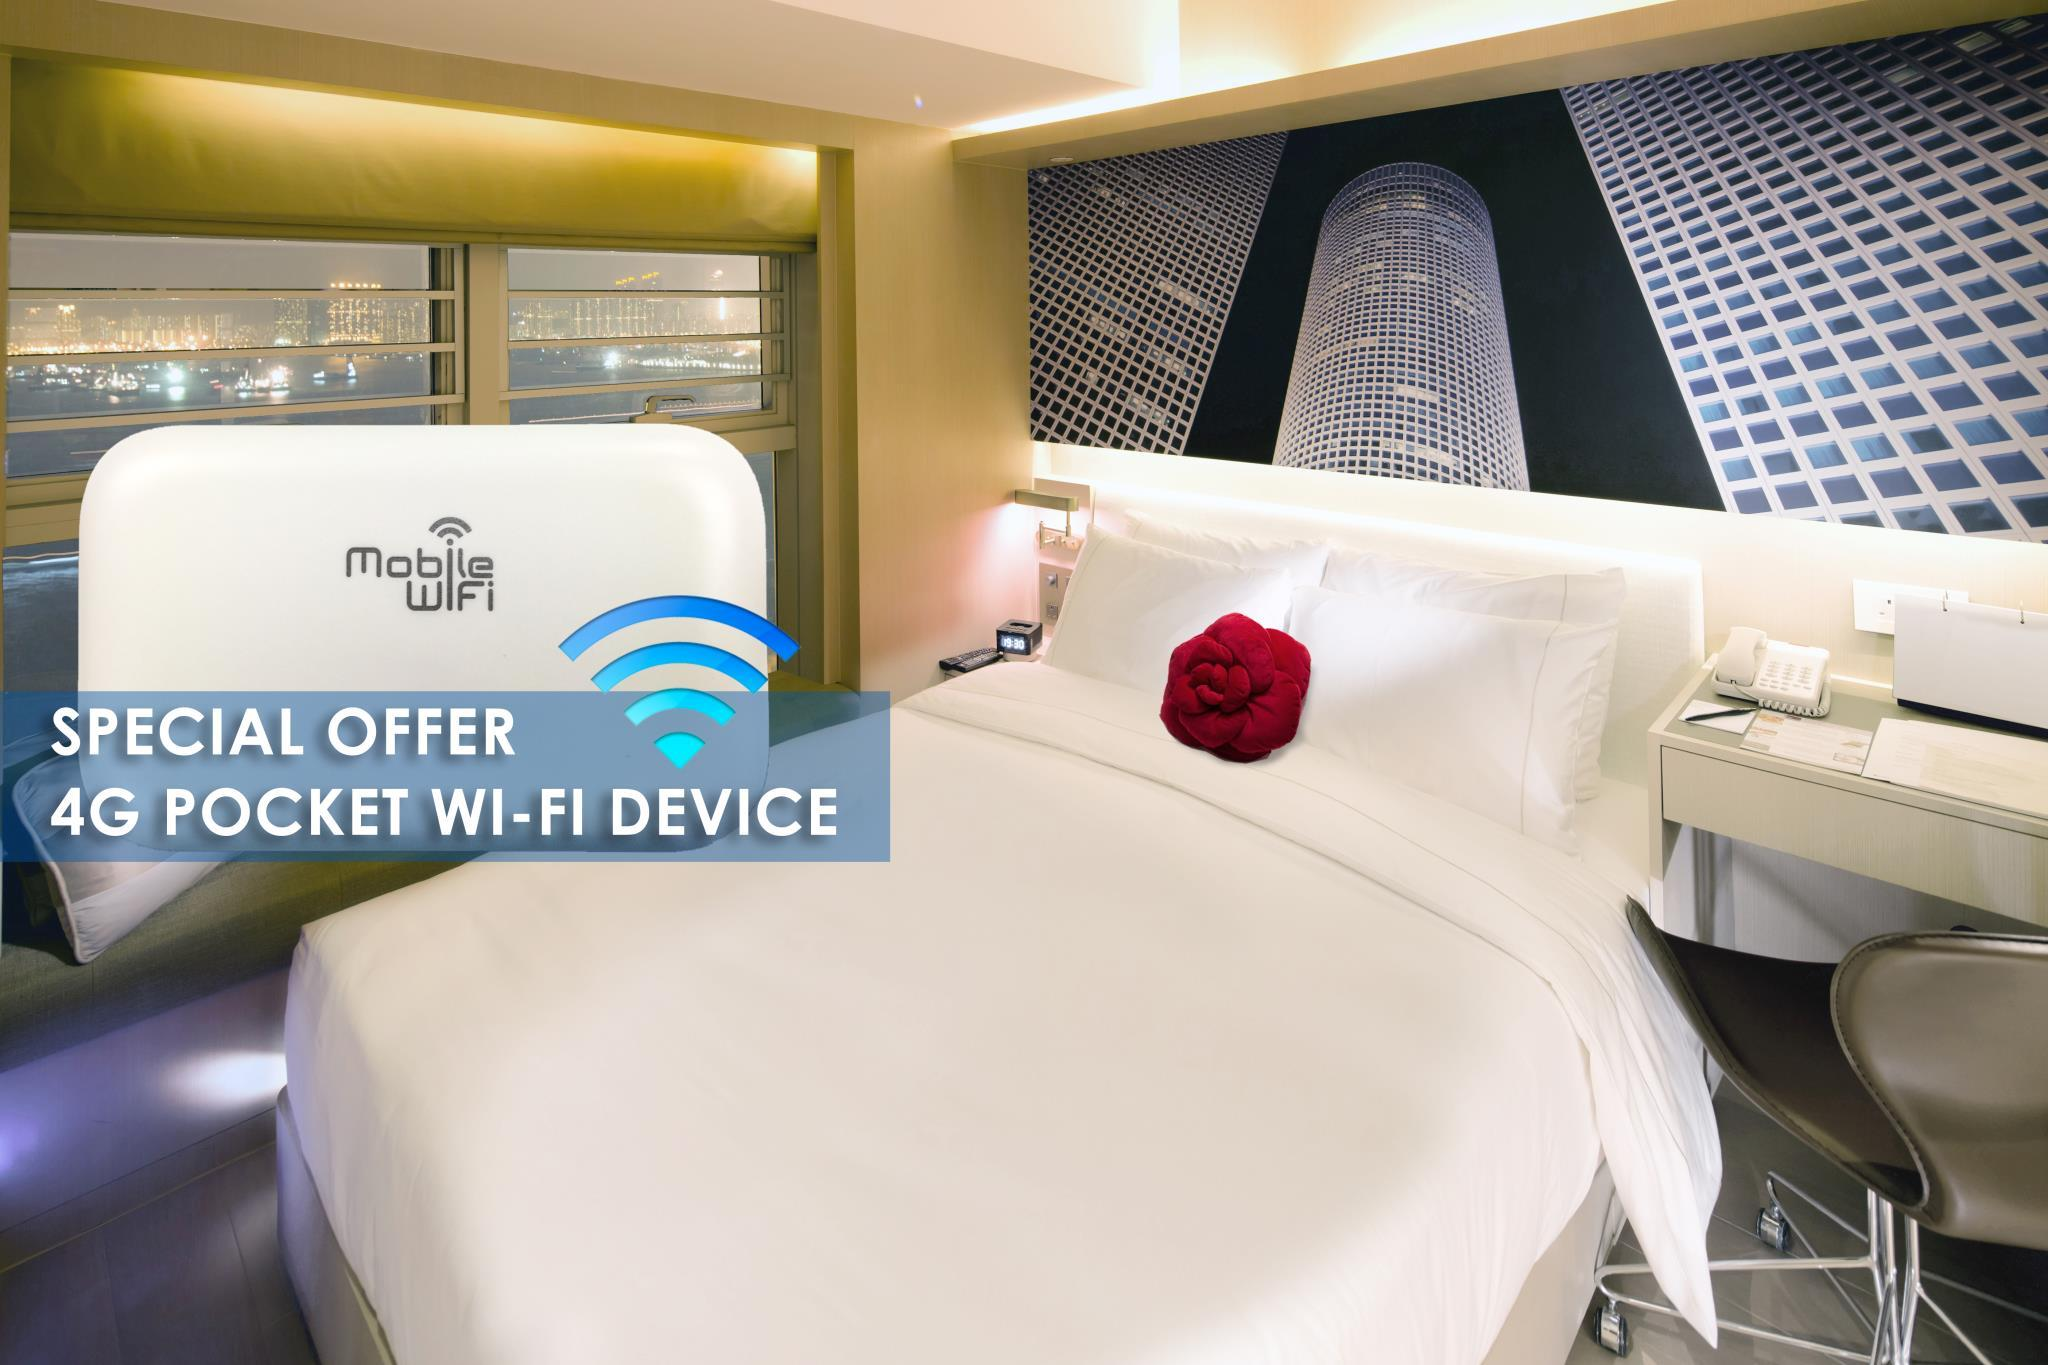 Deluxe Harbour View with 4G Pocket Wi-Fi Device